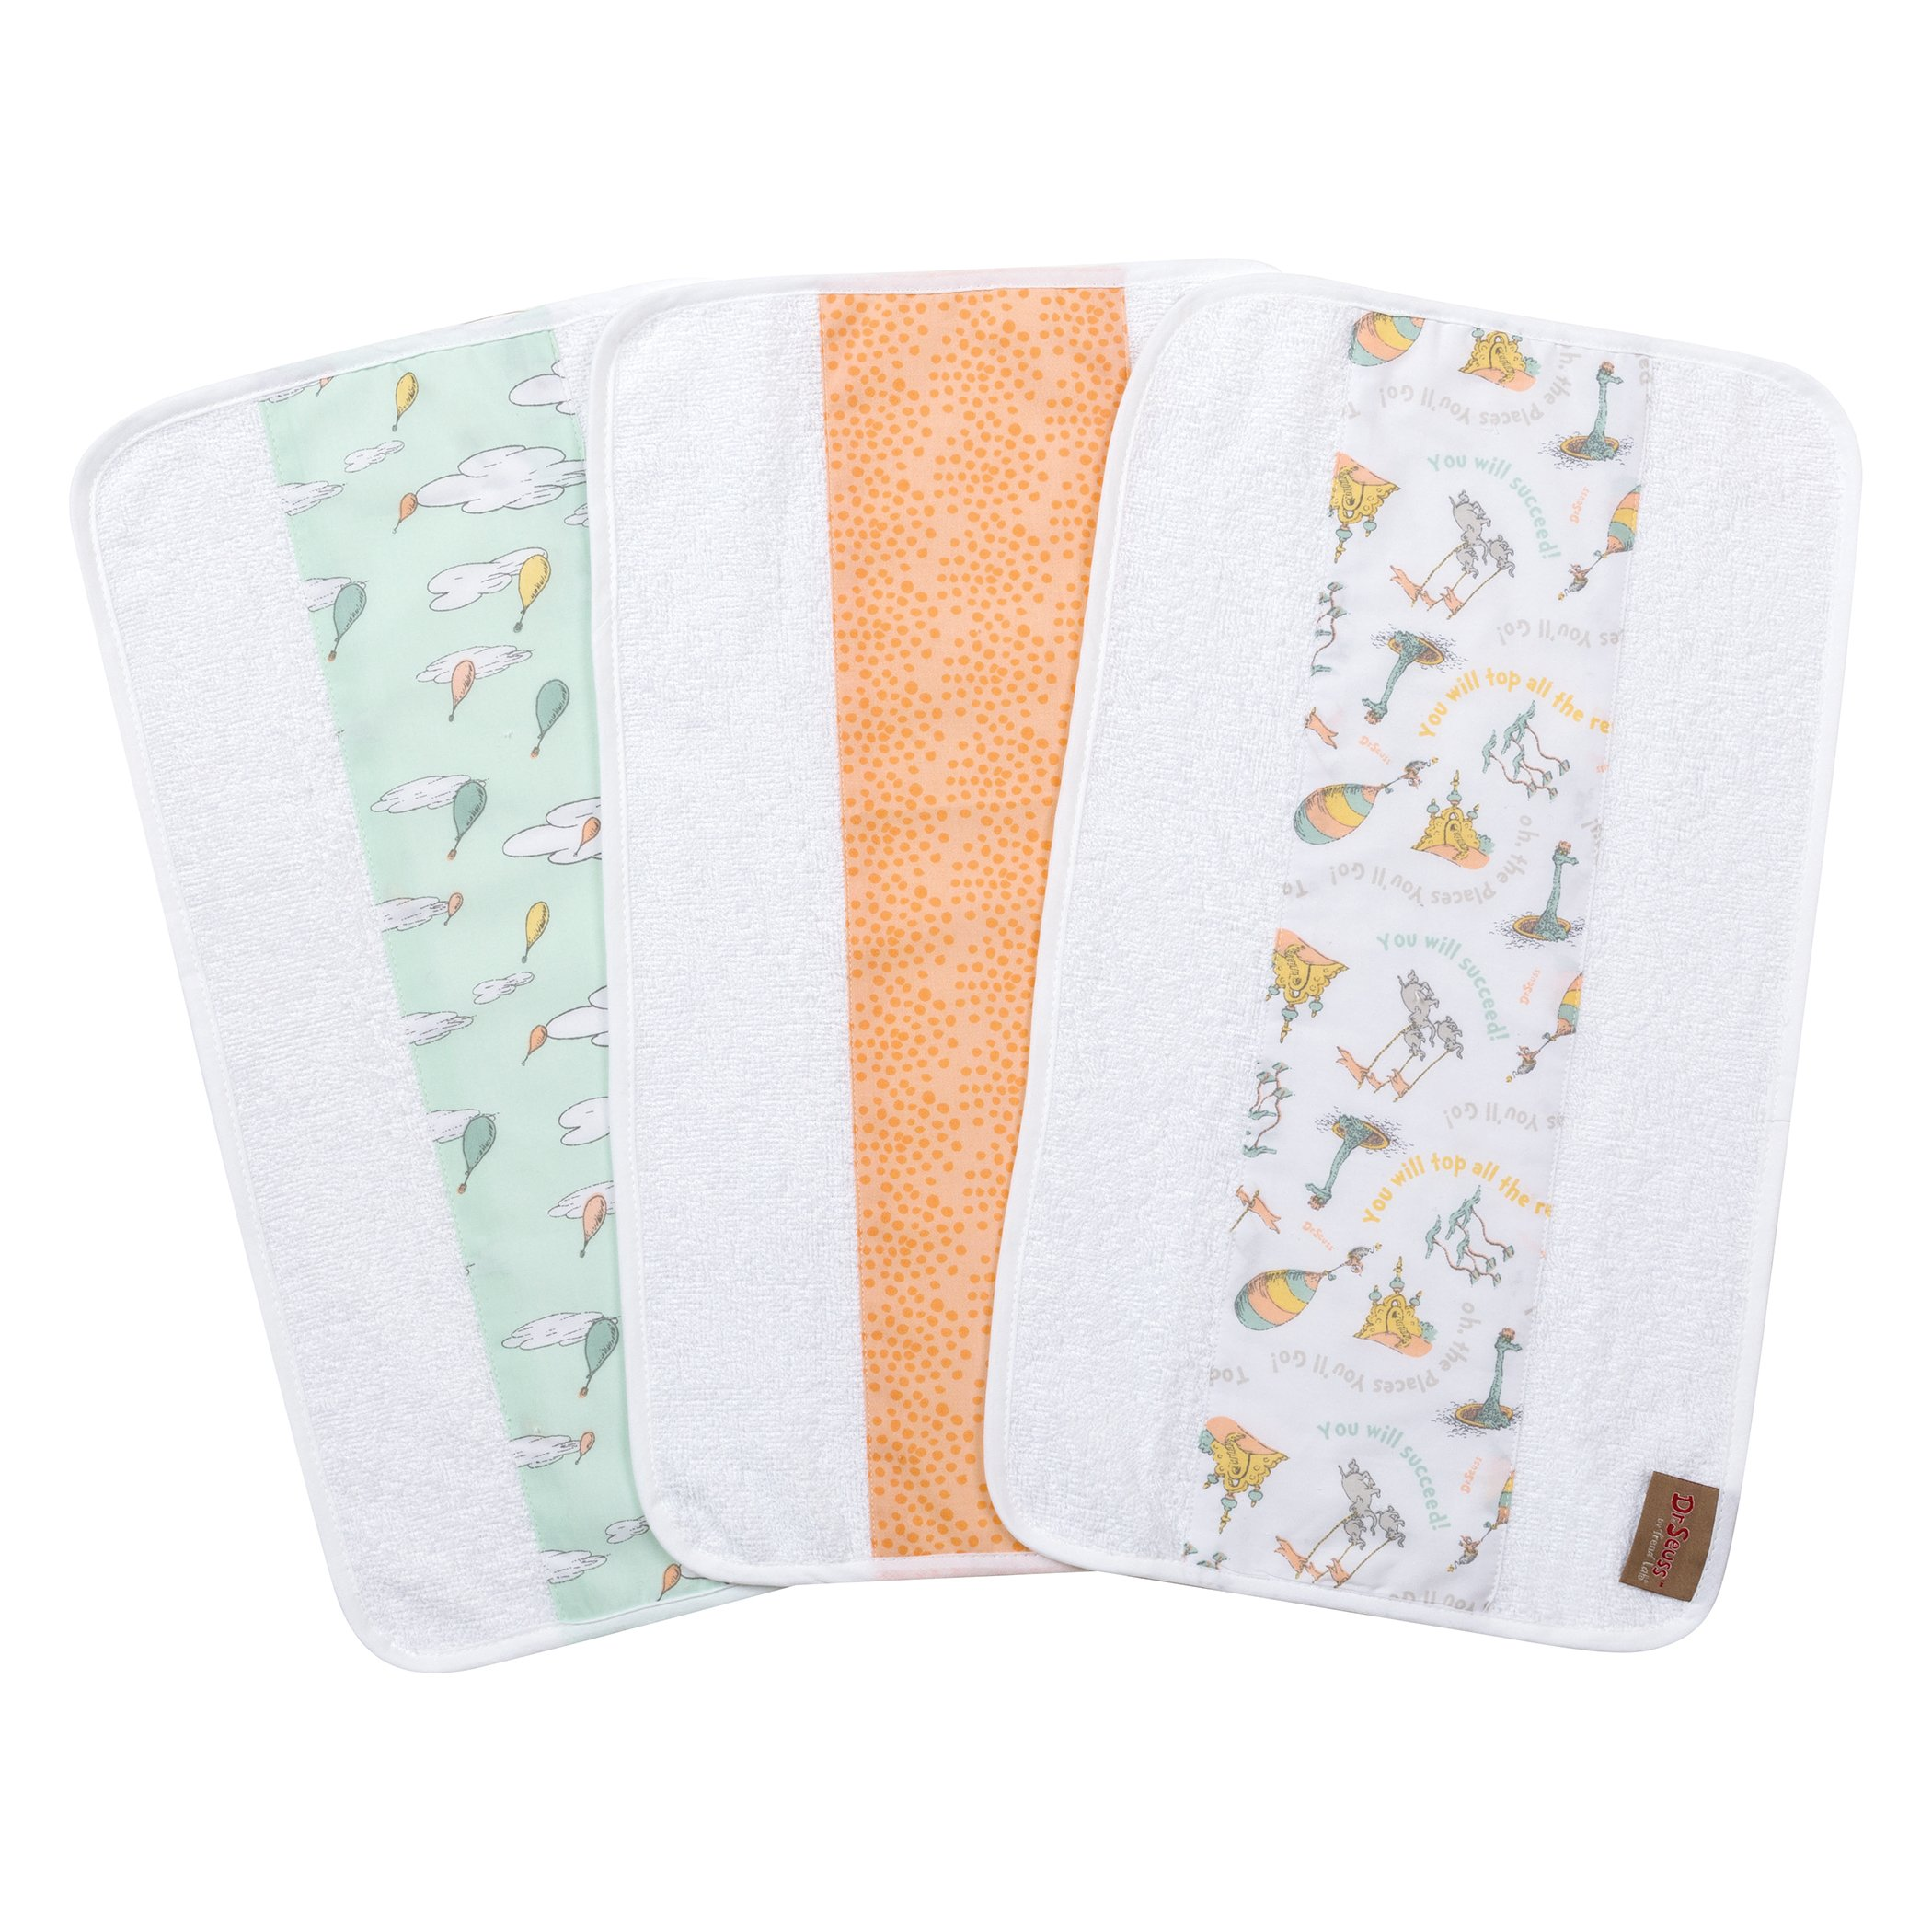 Trend Lab Dr. Seuss by Oh, The Places You'll Go! 3 Pack Jumbo Burp Cloth Set, Aqua, Orange, Yellow, Gray and White